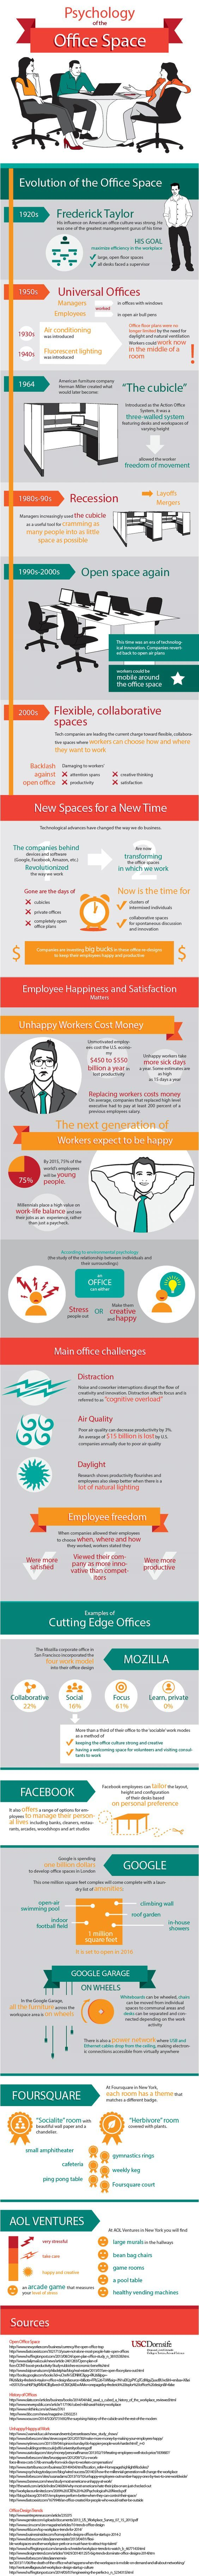 """Office design trends come in and out of fashion quicker than one can say """"treadmill desk"""", but there's a good reason why managers are always obsessing about ways to improve their work spaces; it turns out that an office space can have a huge psychological impact on employees. When creating an office layout, lighting, ventilation, and:"""